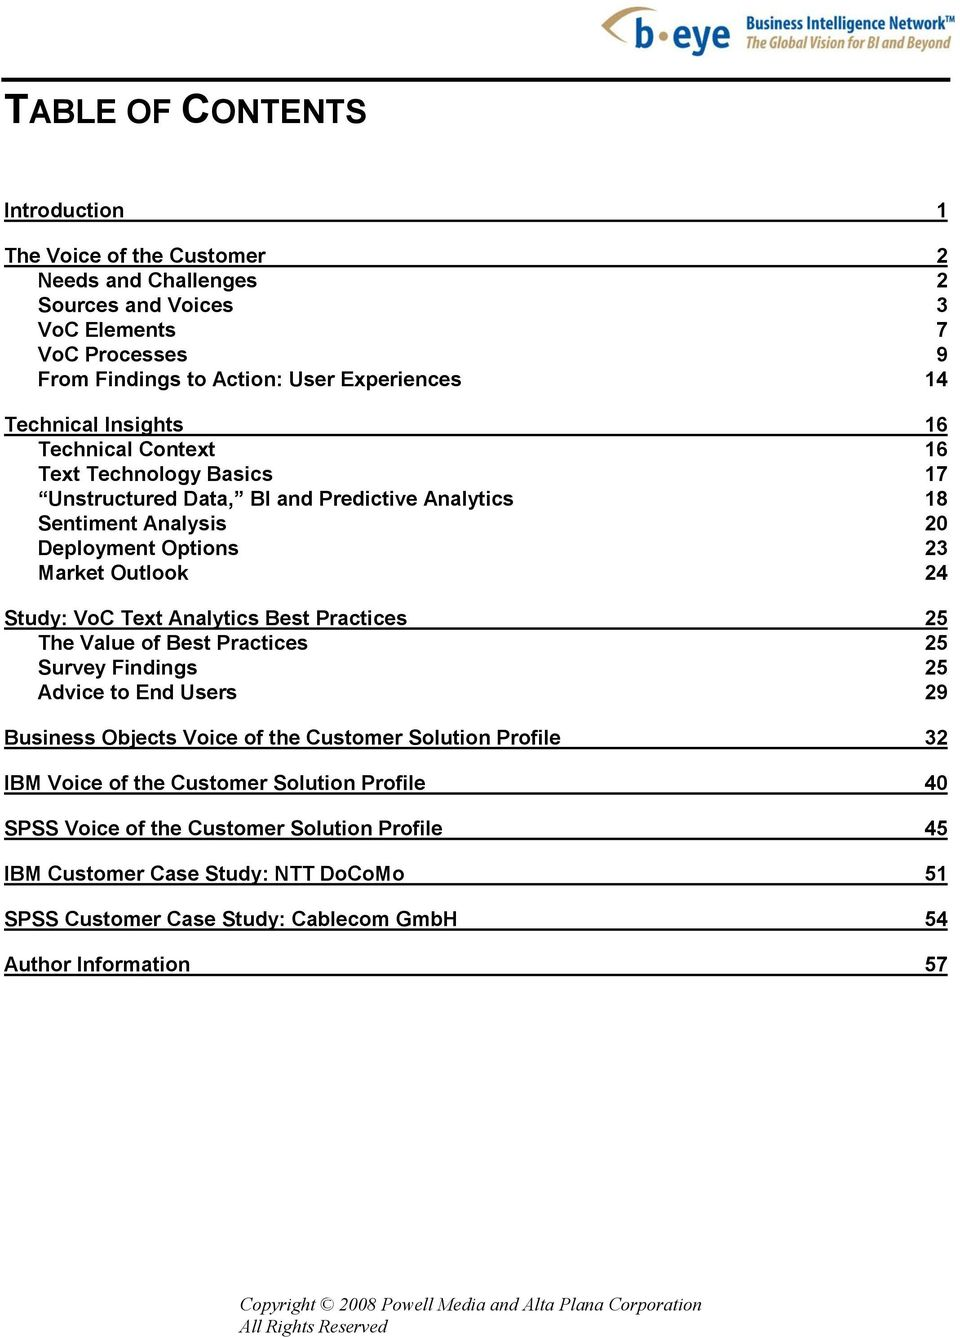 VoC Text Analytics Best Practices 25 The Value of Best Practices 25 Survey Findings 25 Advice to End Users 29 Business Objects Voice of the Customer Solution Profile 32 IBM Voice of the